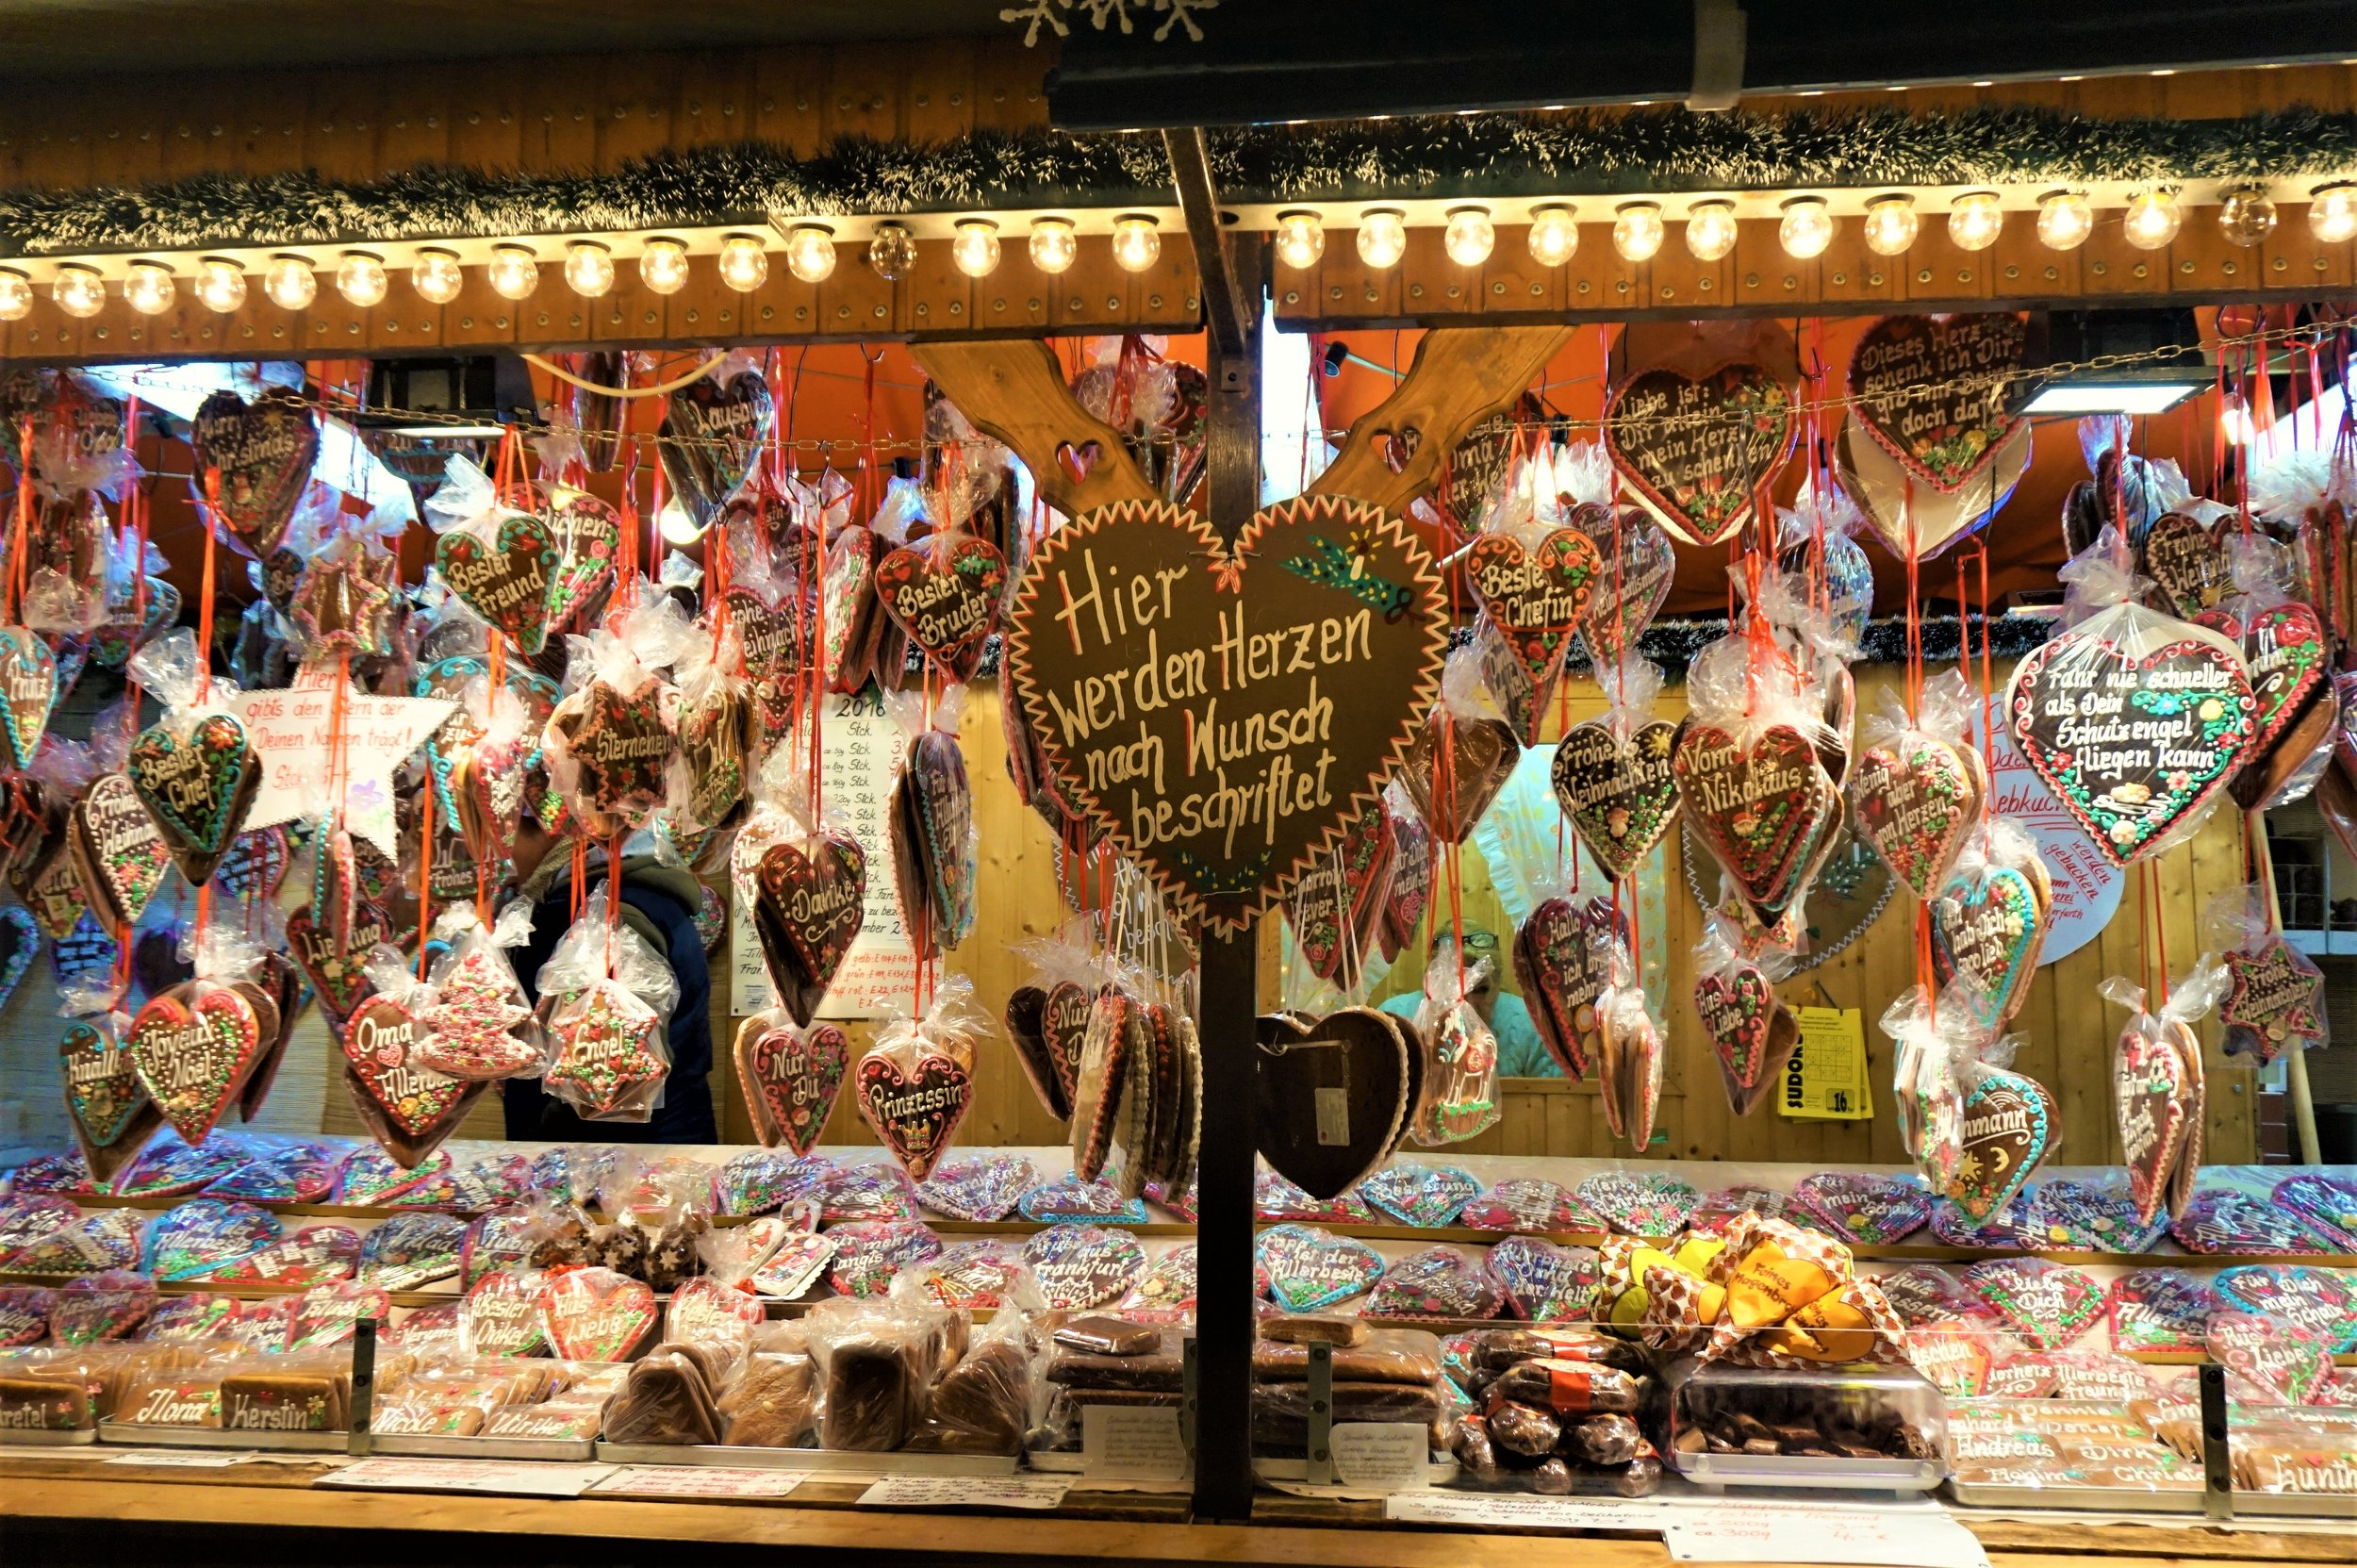 Lebkucken is one of the best things to try at the German Christmas markets